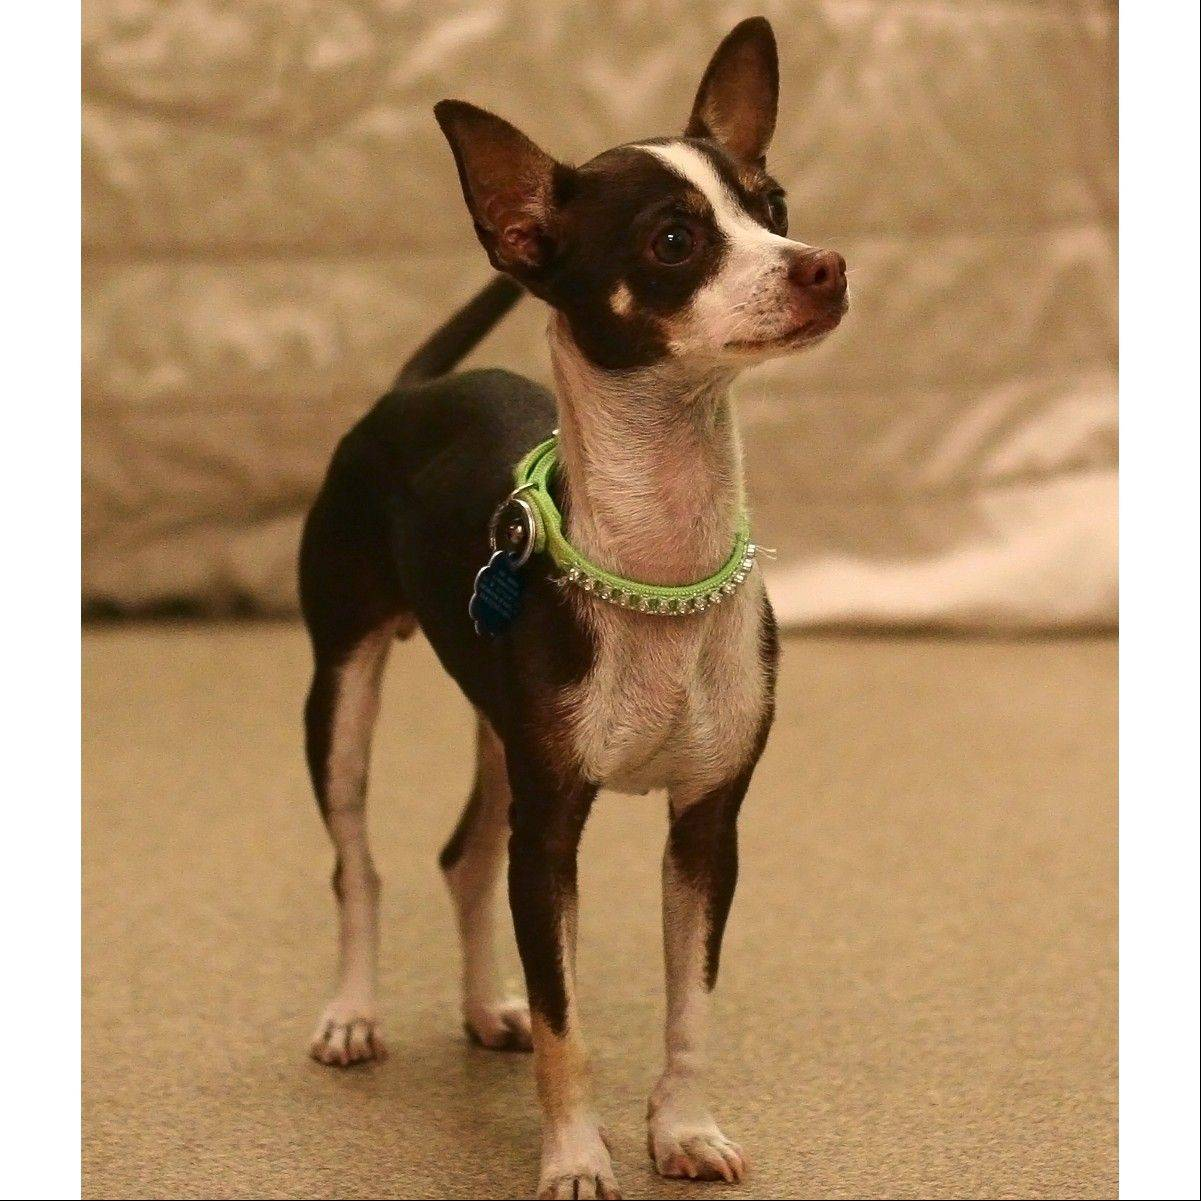 Petunia is a female Chihuahua, about a year and a half old and around 6 pounds.